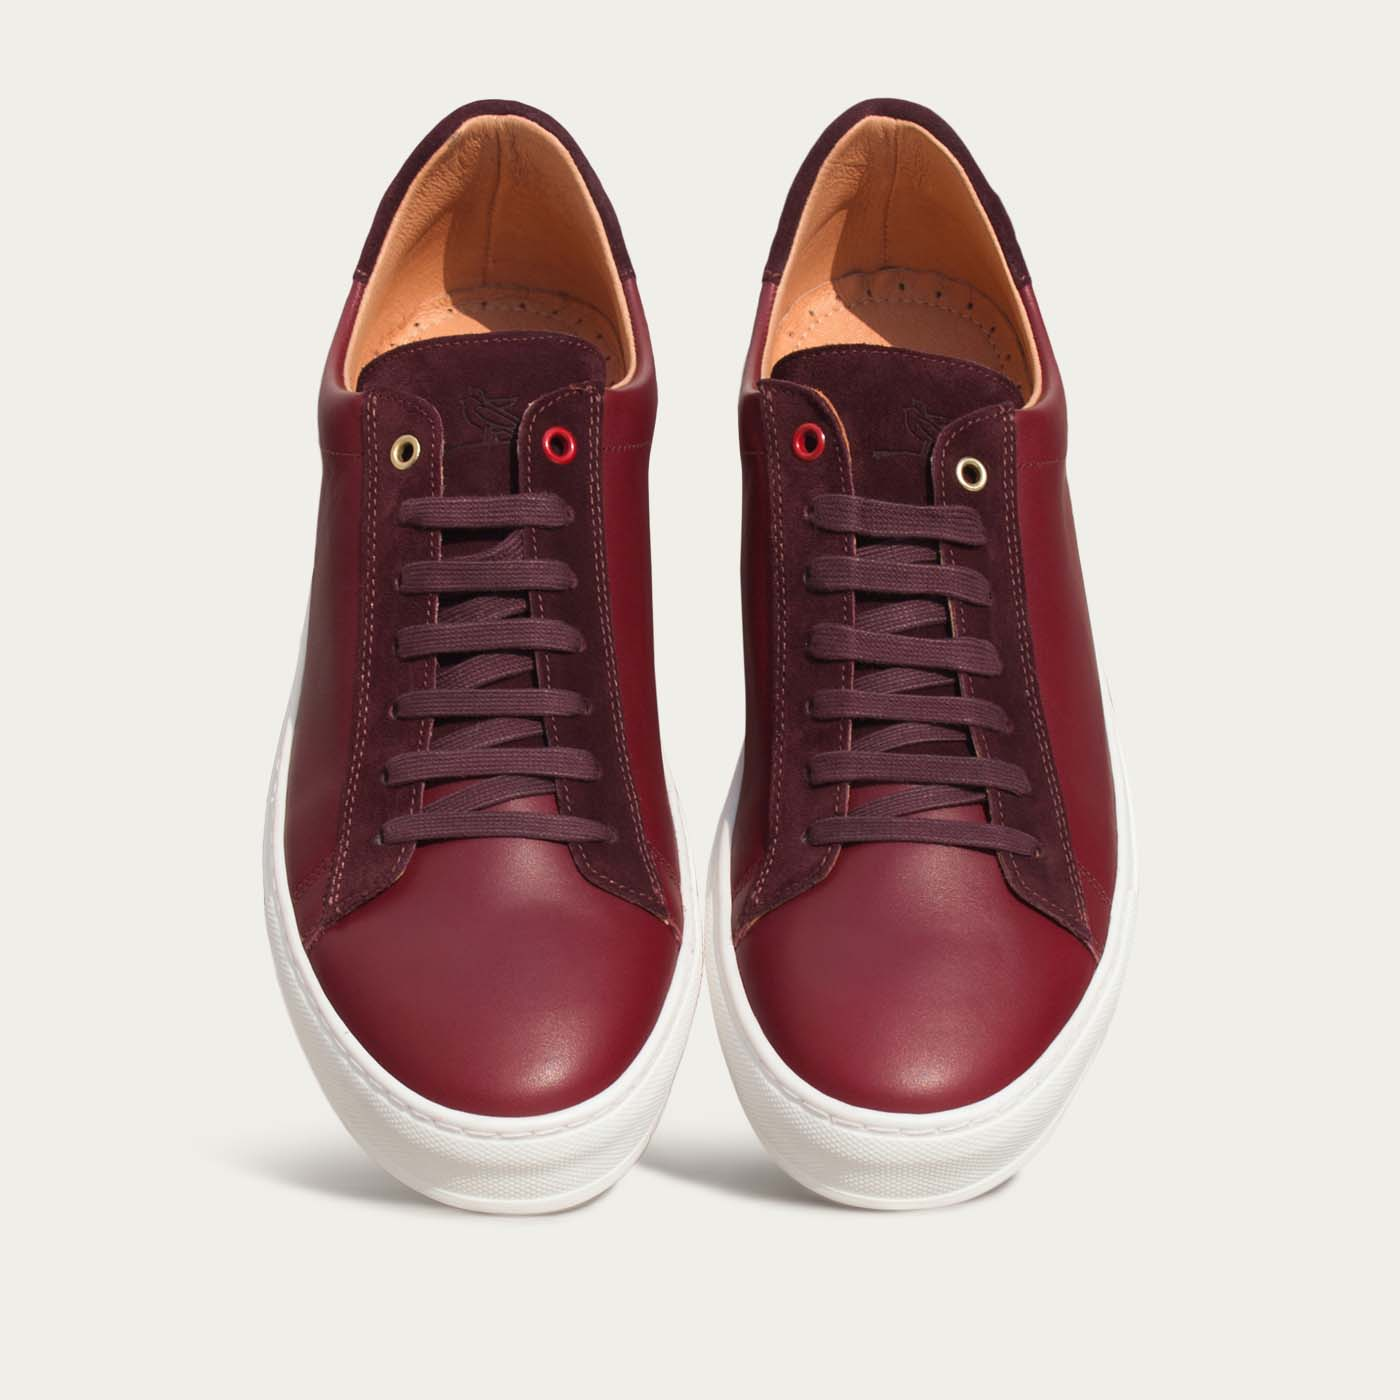 Burgundy Leather Taranta Sneakers    2